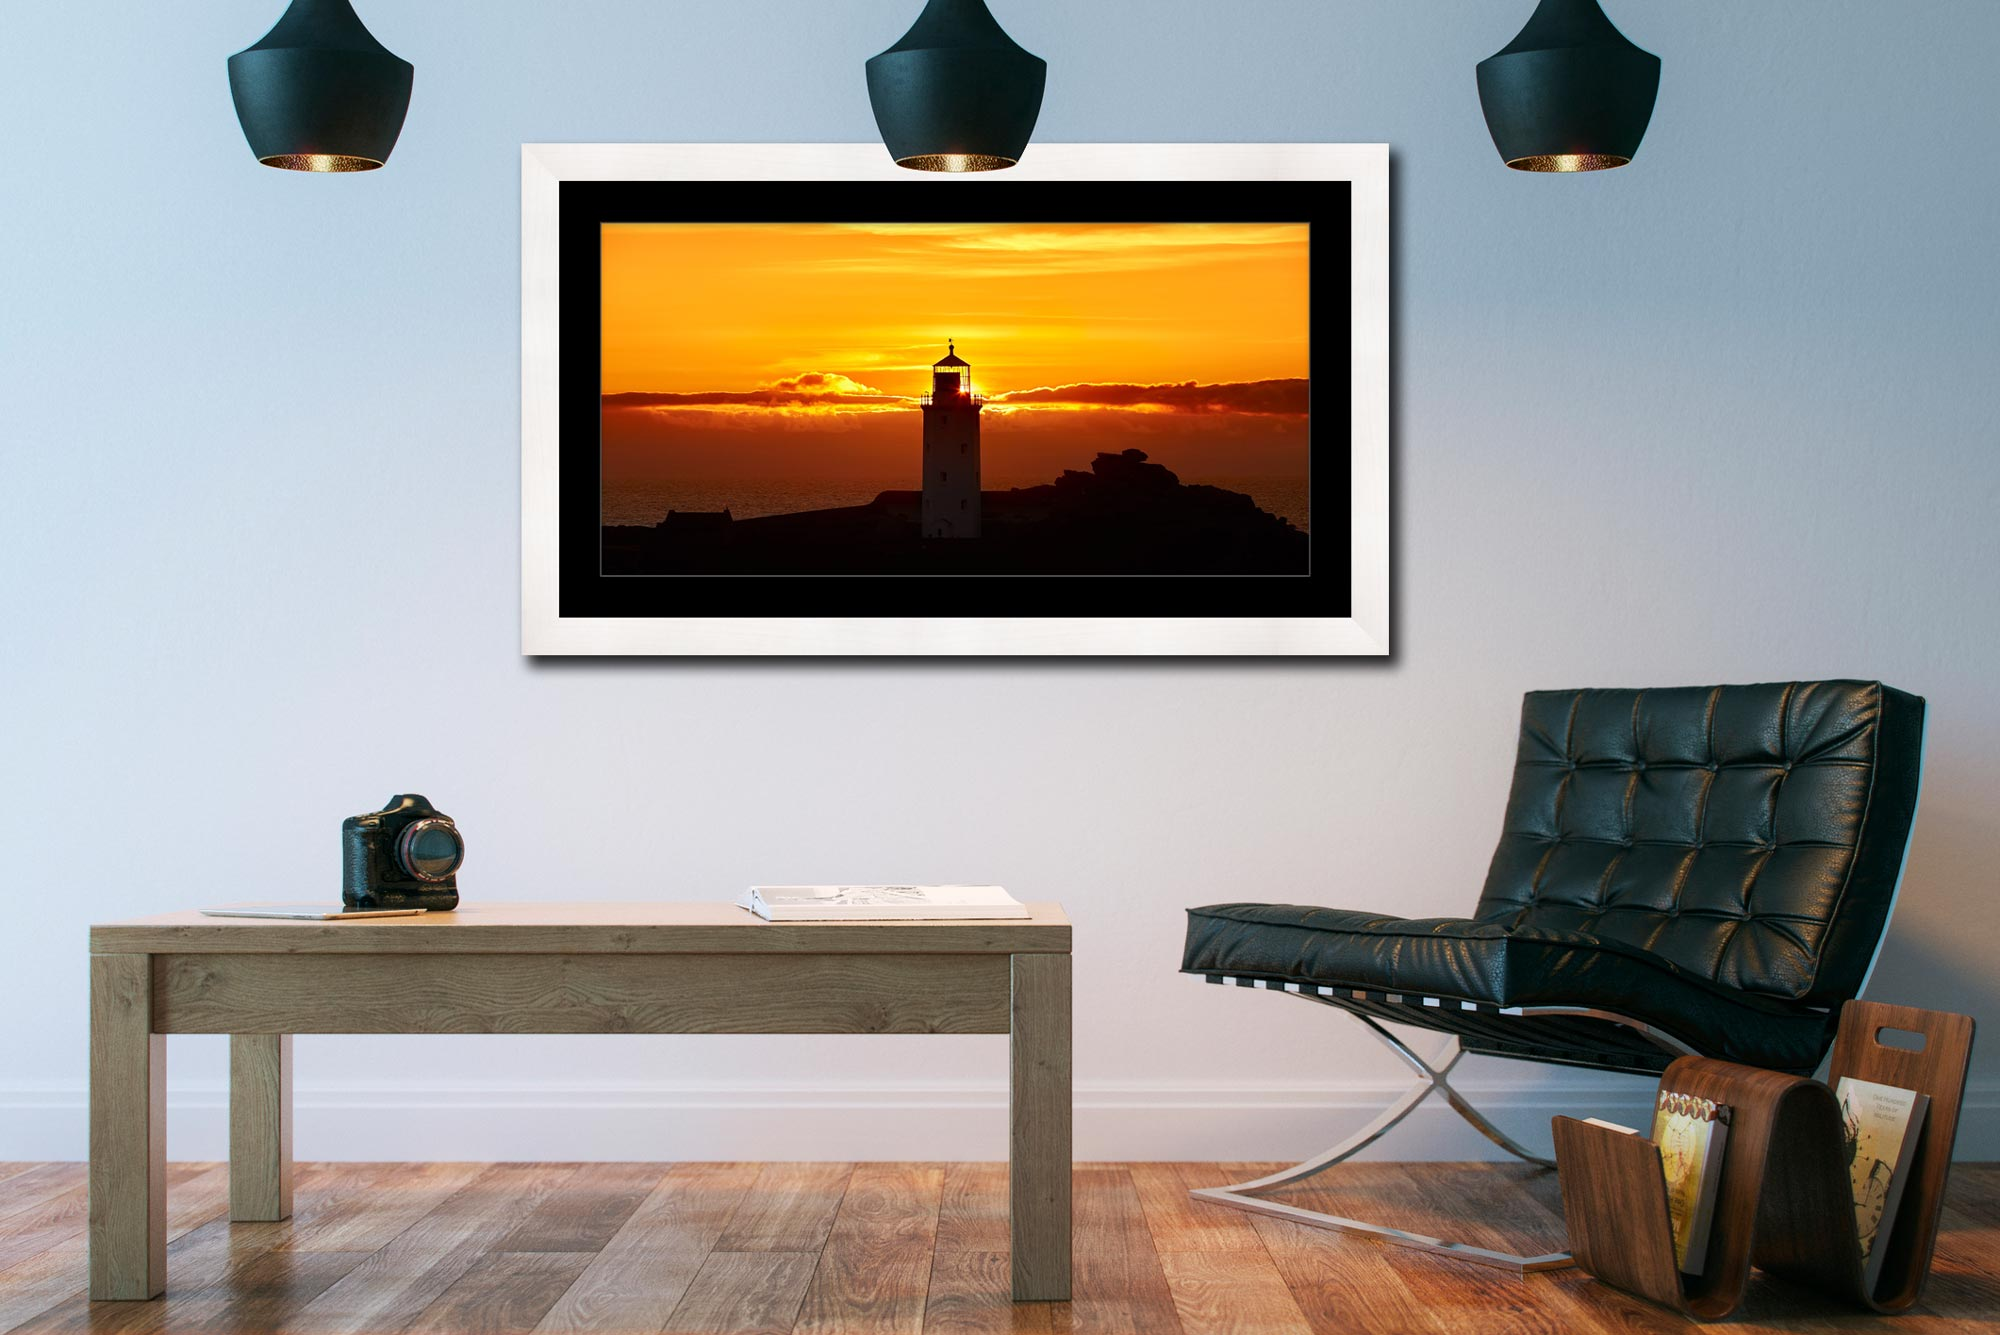 Sunbeams of Godrevy Lighthouse - Framed Print with Mount on Wall